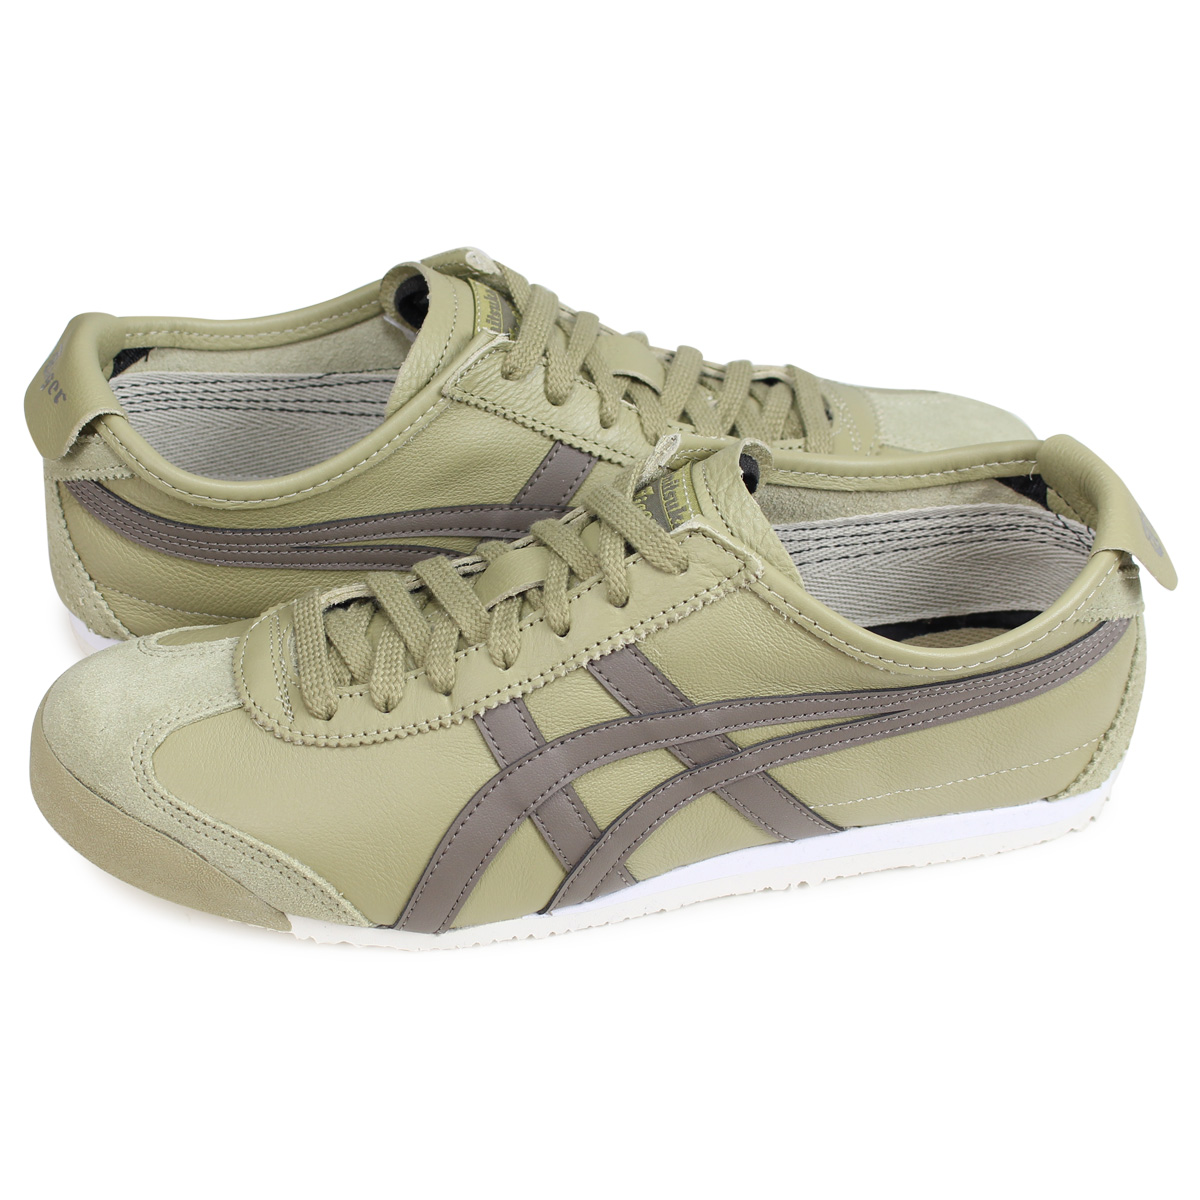 adc8ba47fc1 Onitsuka Tiger MEXICO 66 Onitsuka tiger Mexico 66 men s lady s sneakers  1183A201-251 brown beige  load planned Shinnyu load in reservation product  10 11 ...